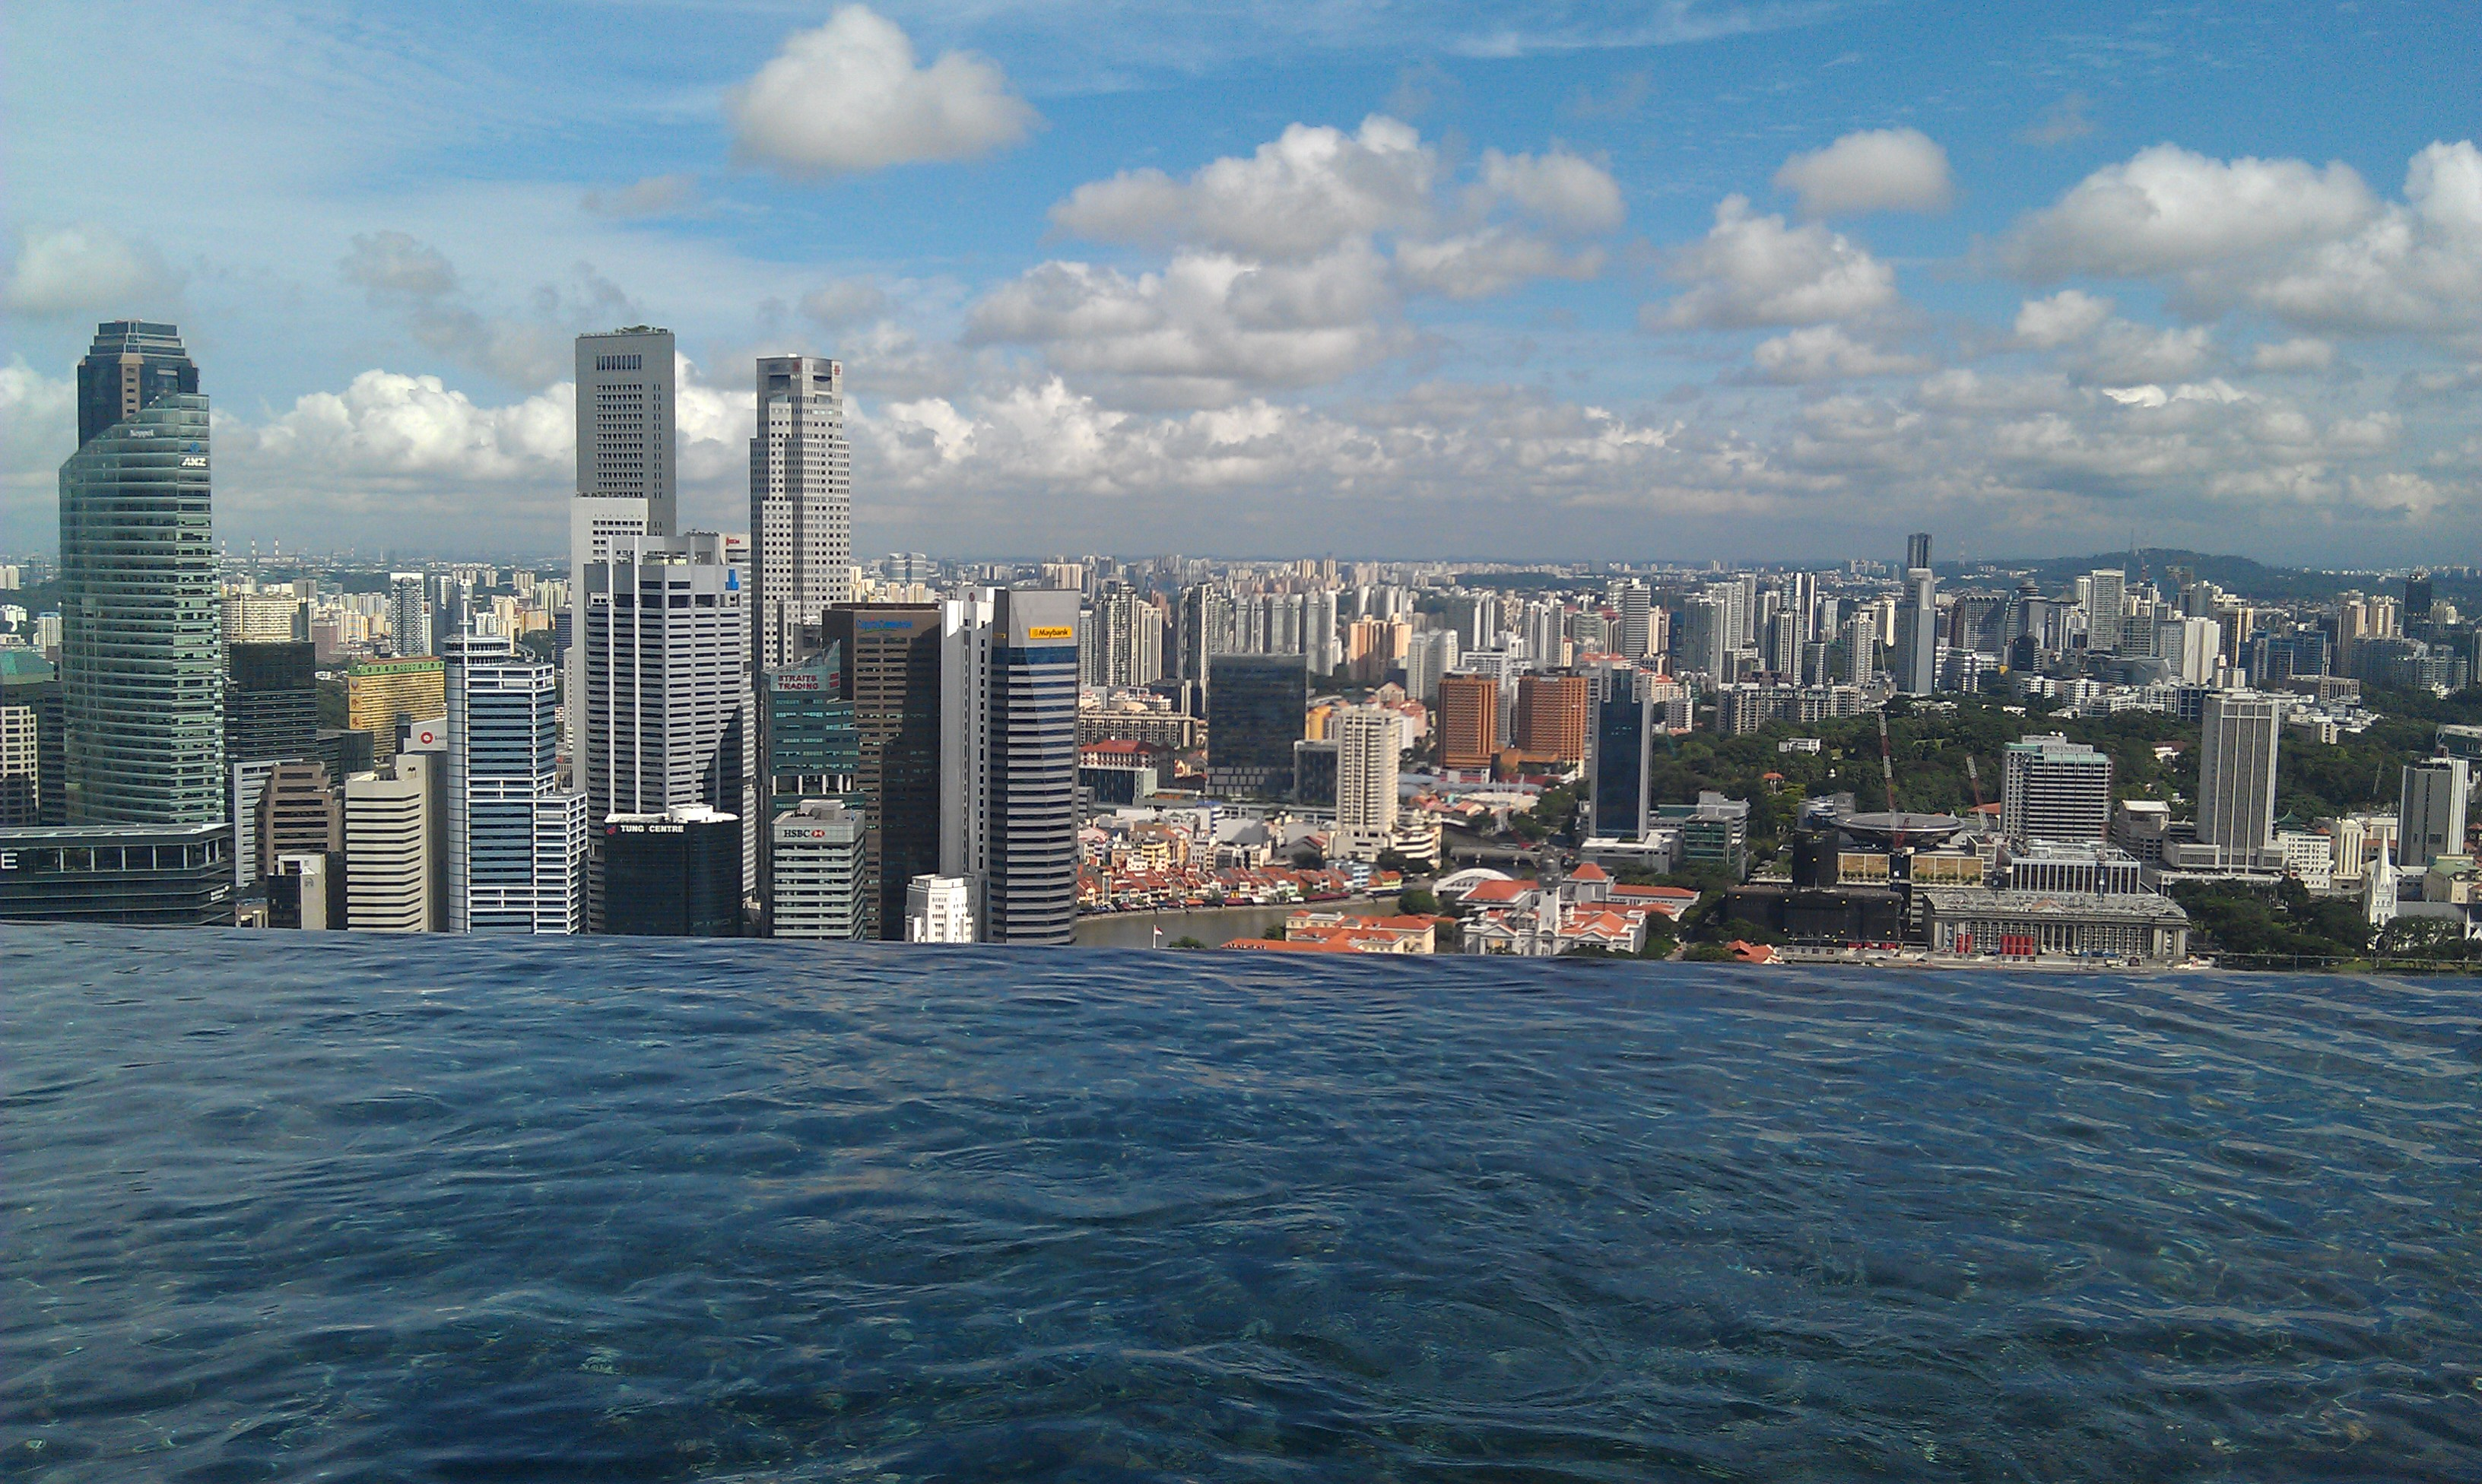 Singapore slings rooftop swims sonia jones travel - Marina bay singapore pool ...